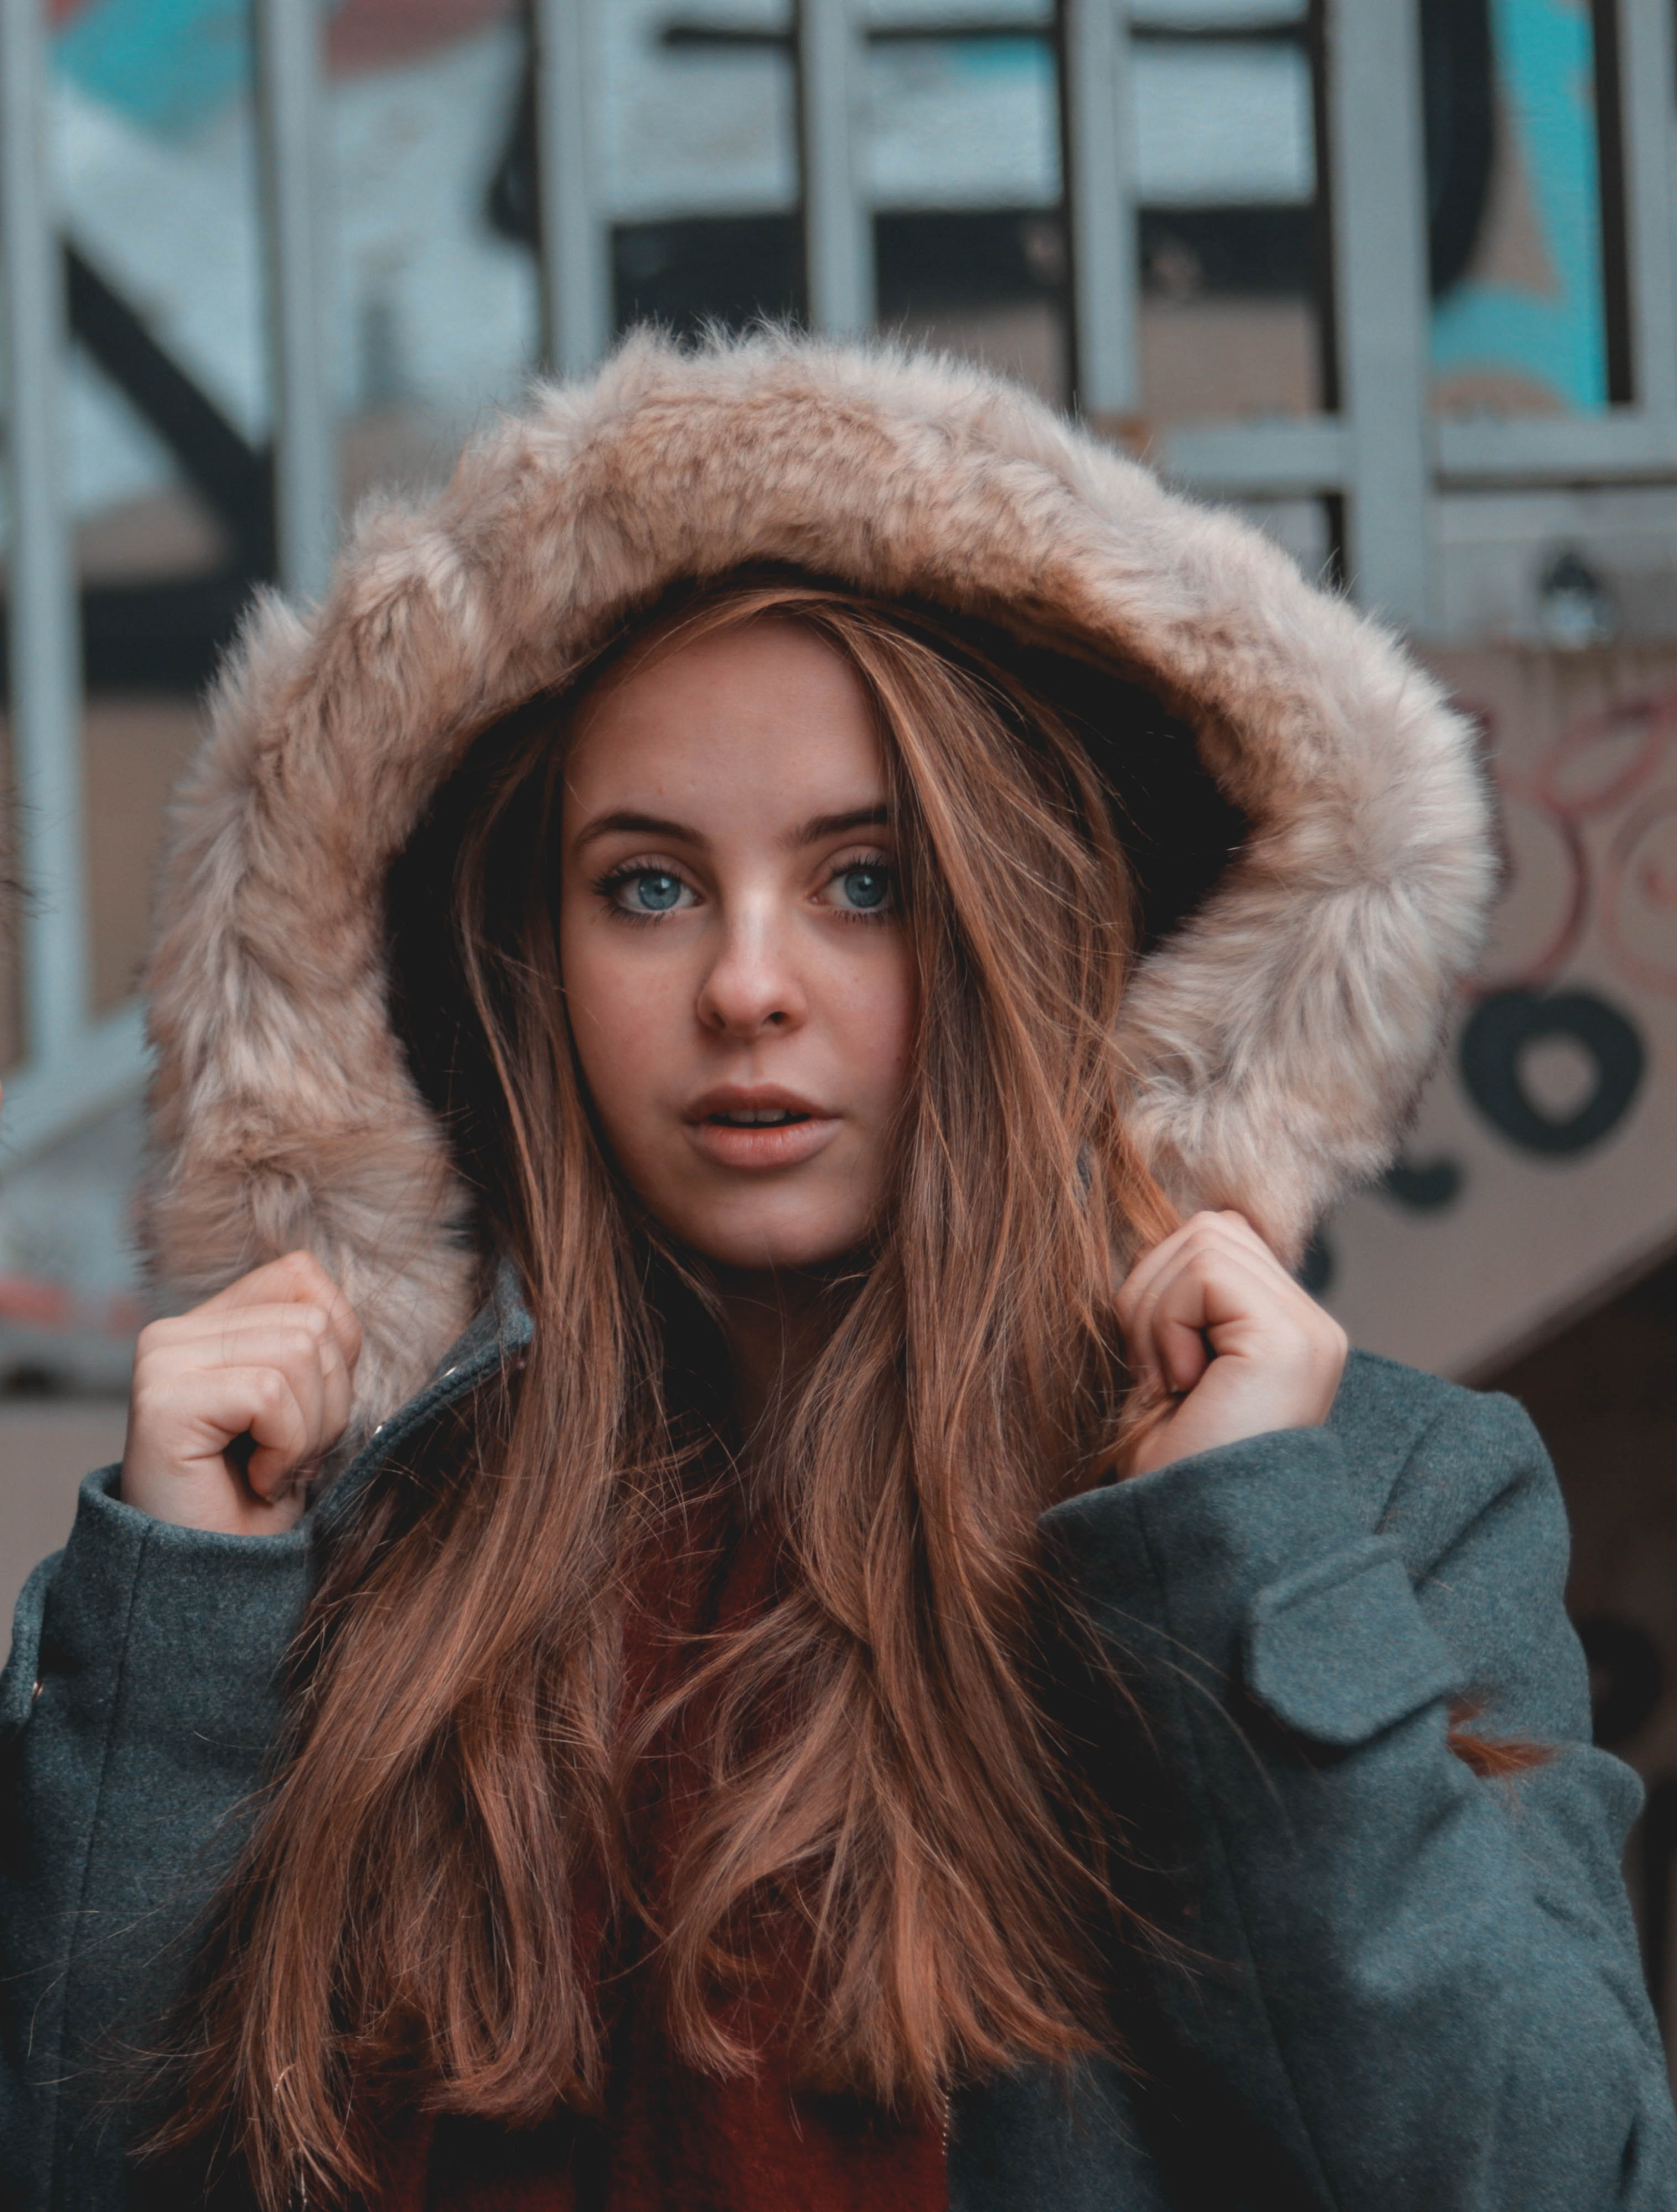 woman wearing gray hooded parka jacket